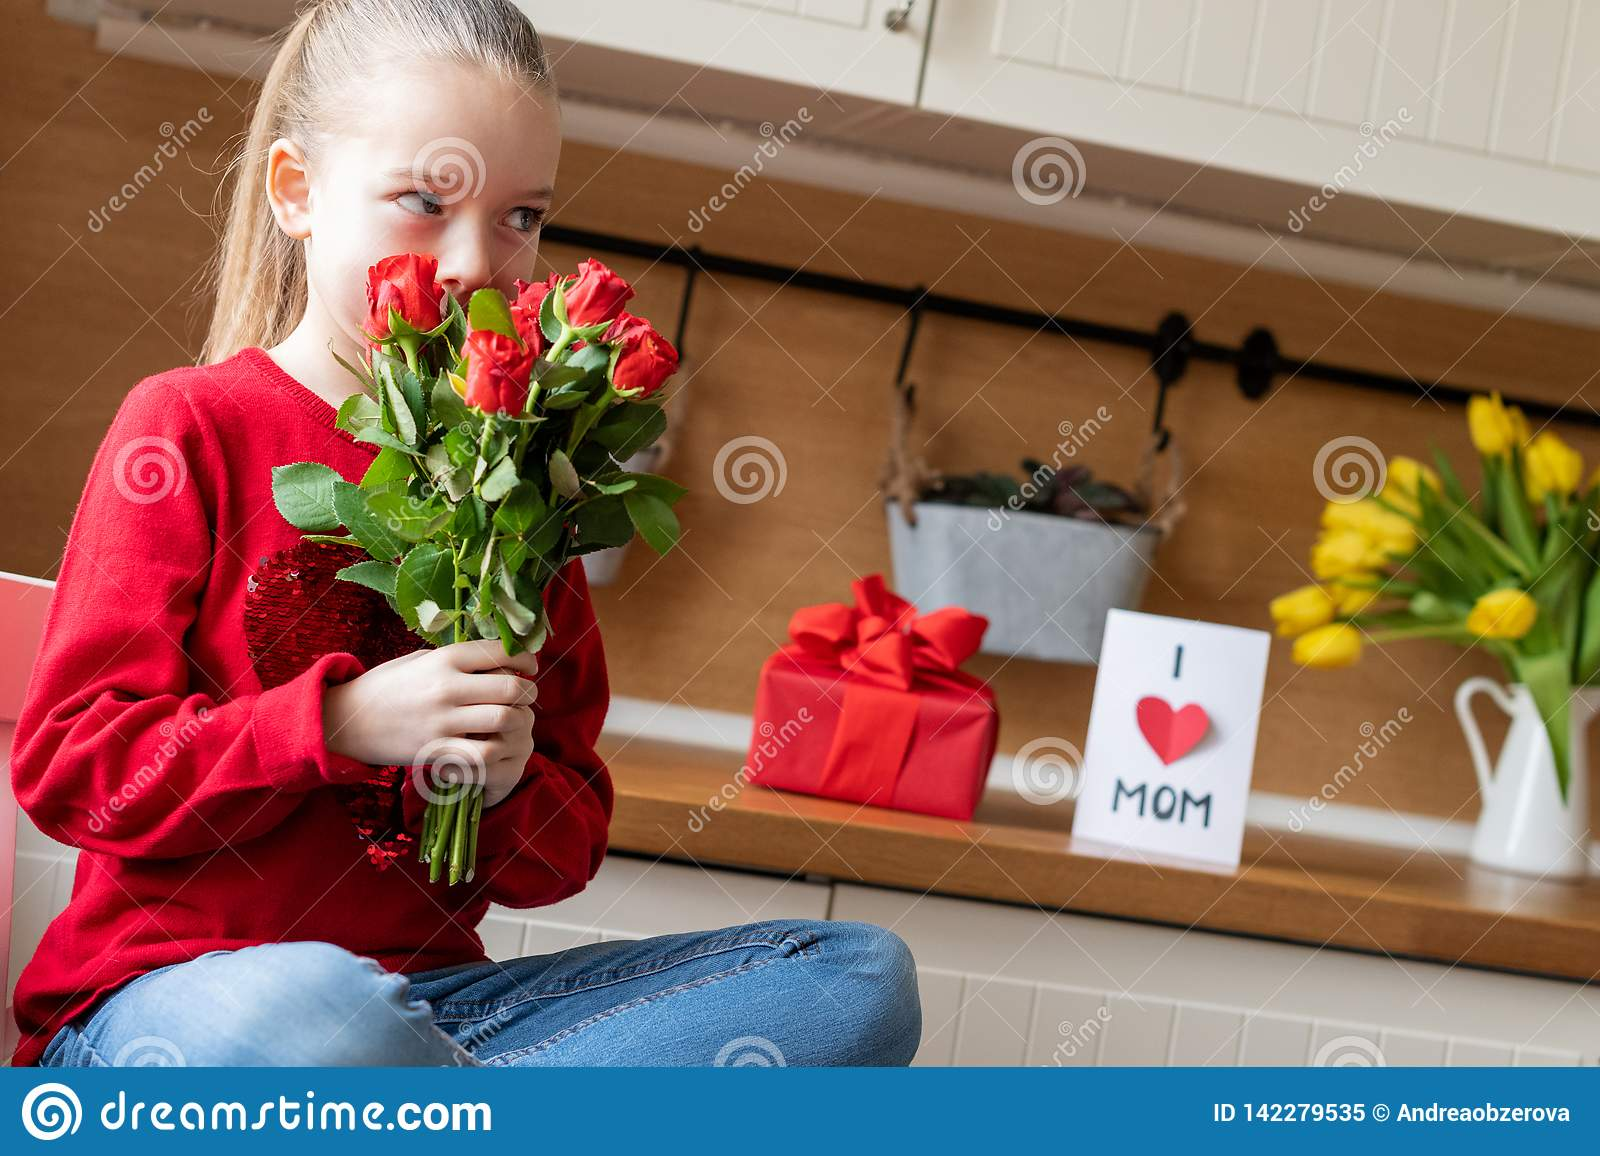 Cute young girl holding bouquet of red roses for her mom. Family celebration concept. Happy Mother`s Day or Birthday Background.